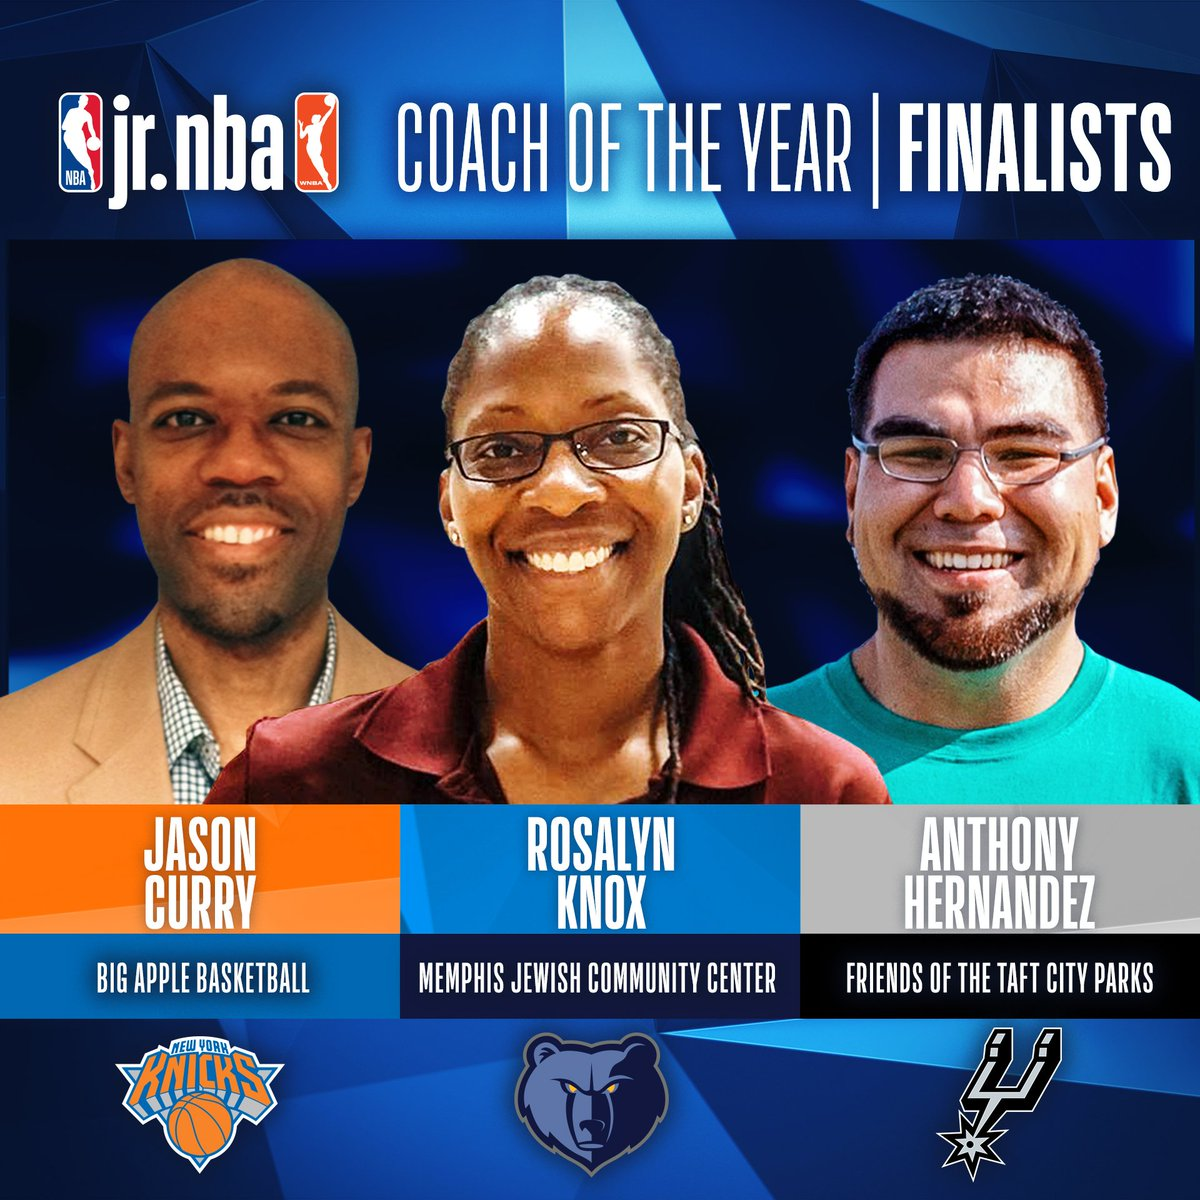 Announcing the 3 FINALISTS for the 2018-19 #JrNBACOY! The winner will be announced on May 17 at the Jr. NBA Youth Basketball Leadership Conference in Chicago!  Learn more: https://on.nba.com/2Ga8z7J